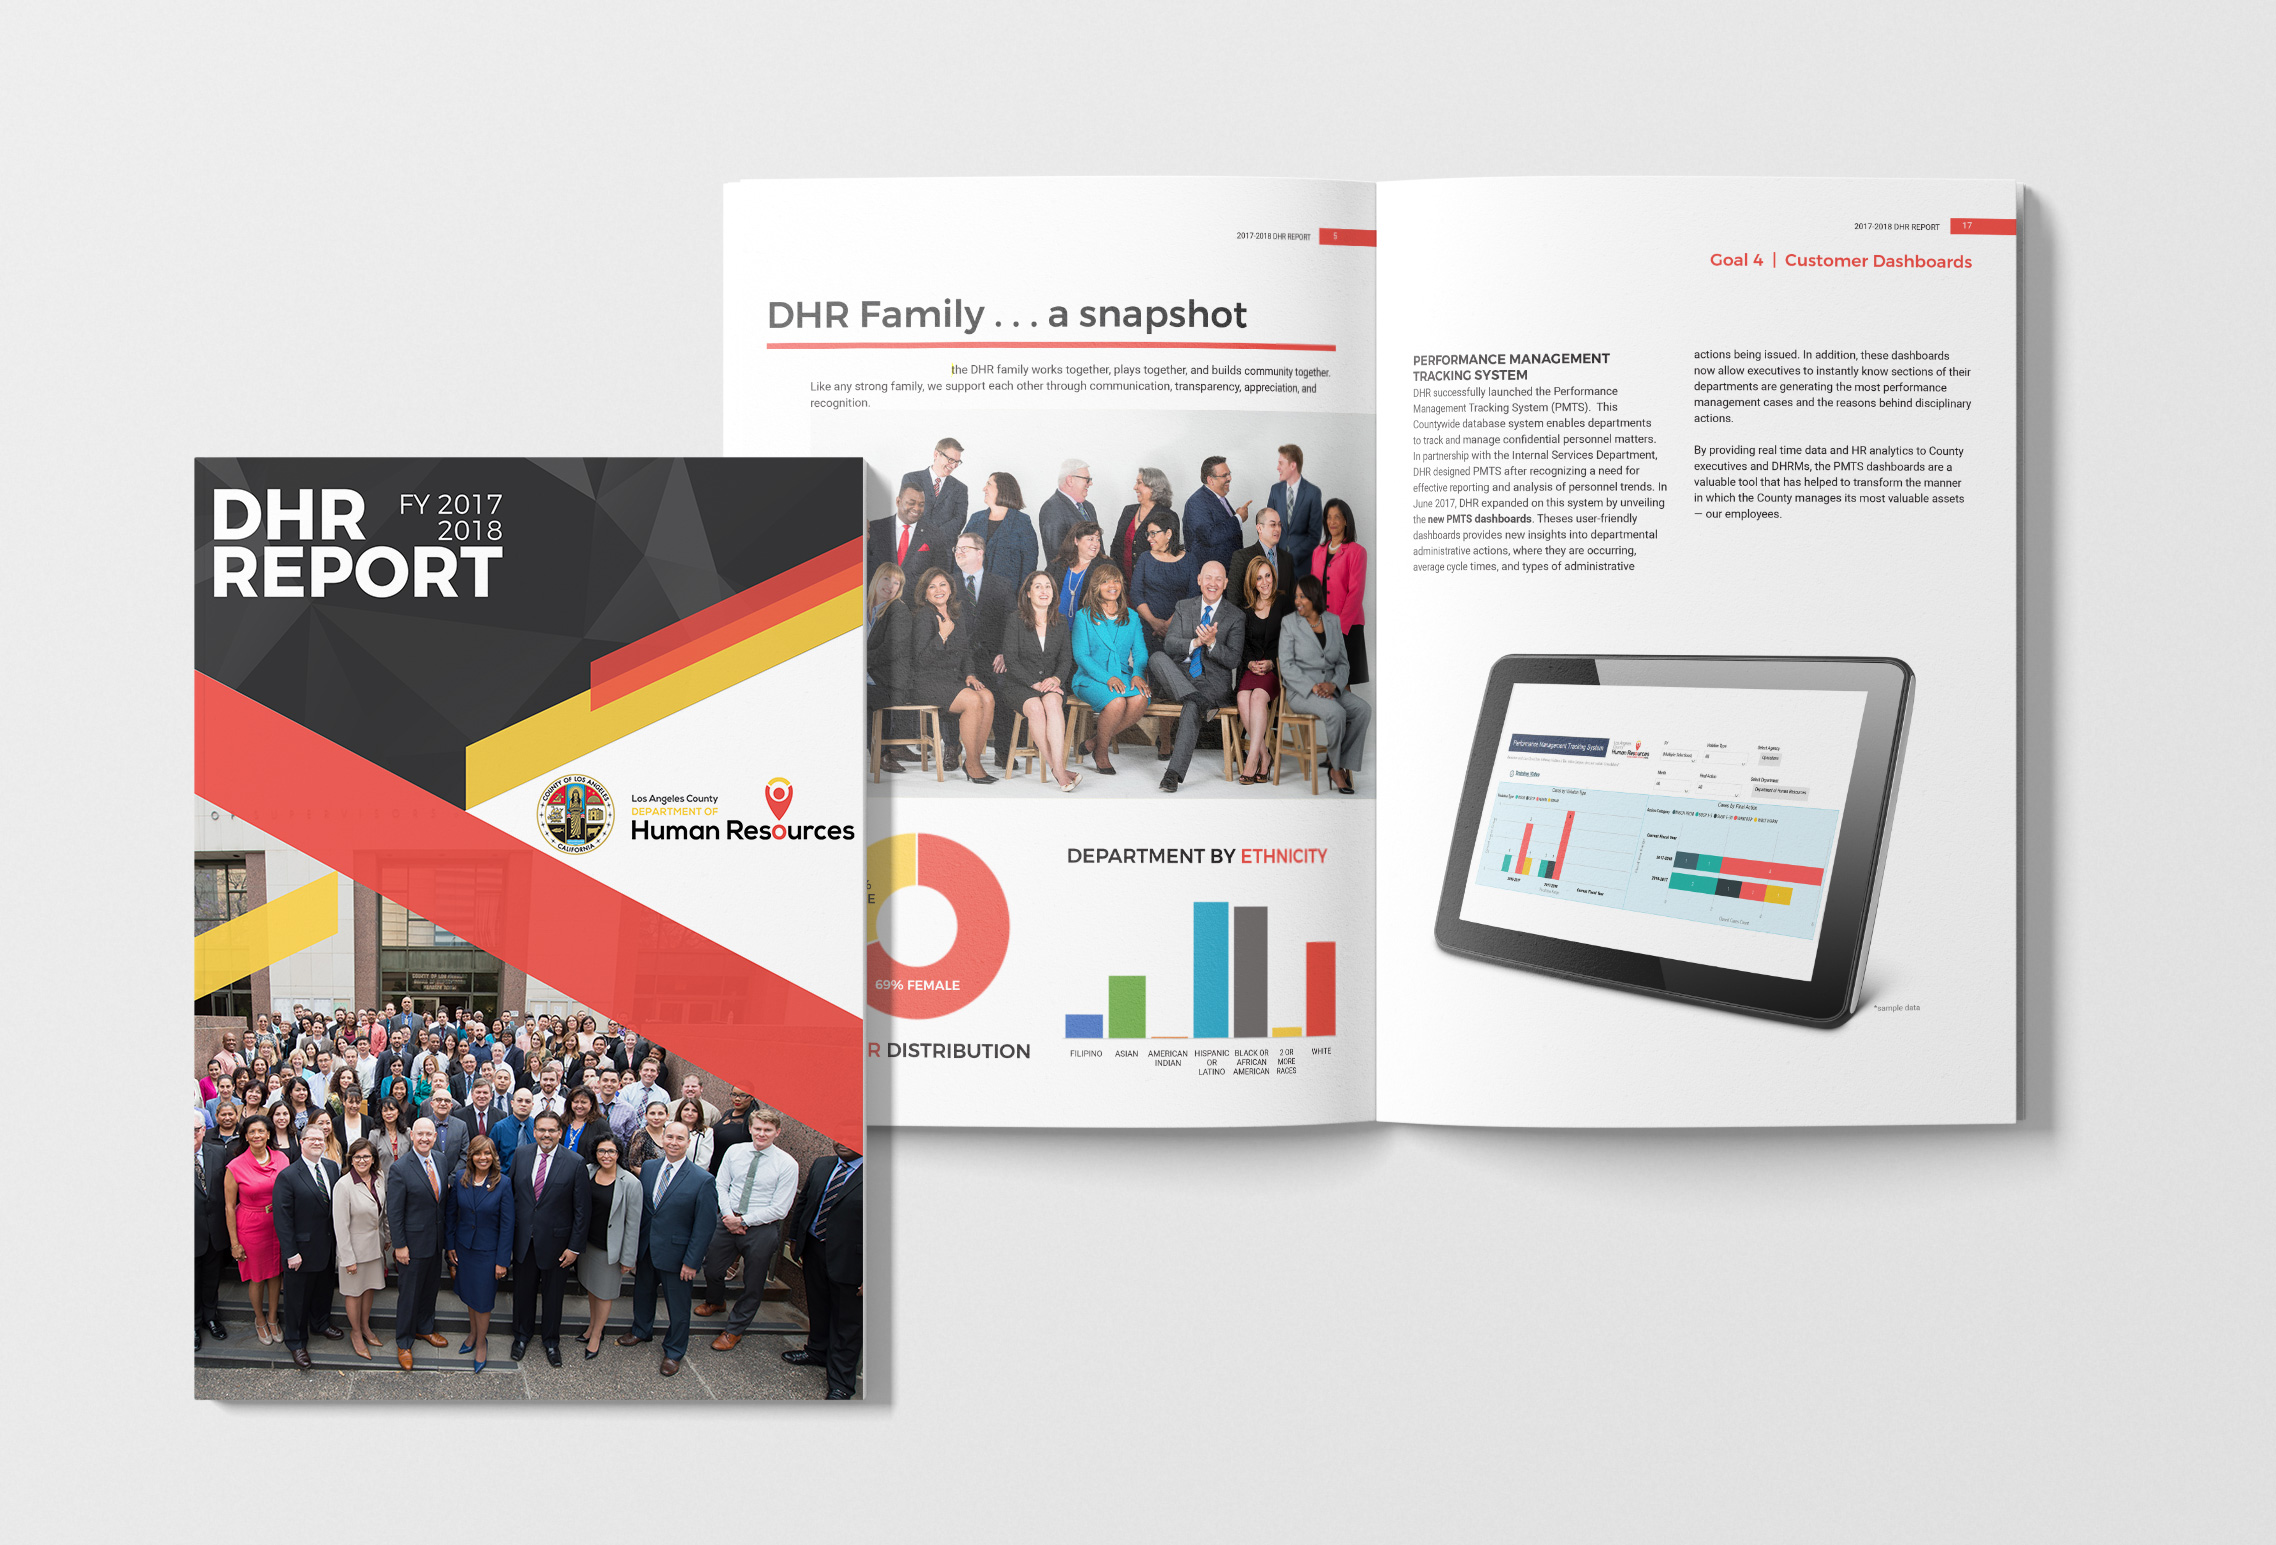 LAC Dept of Human Resources Annual Report